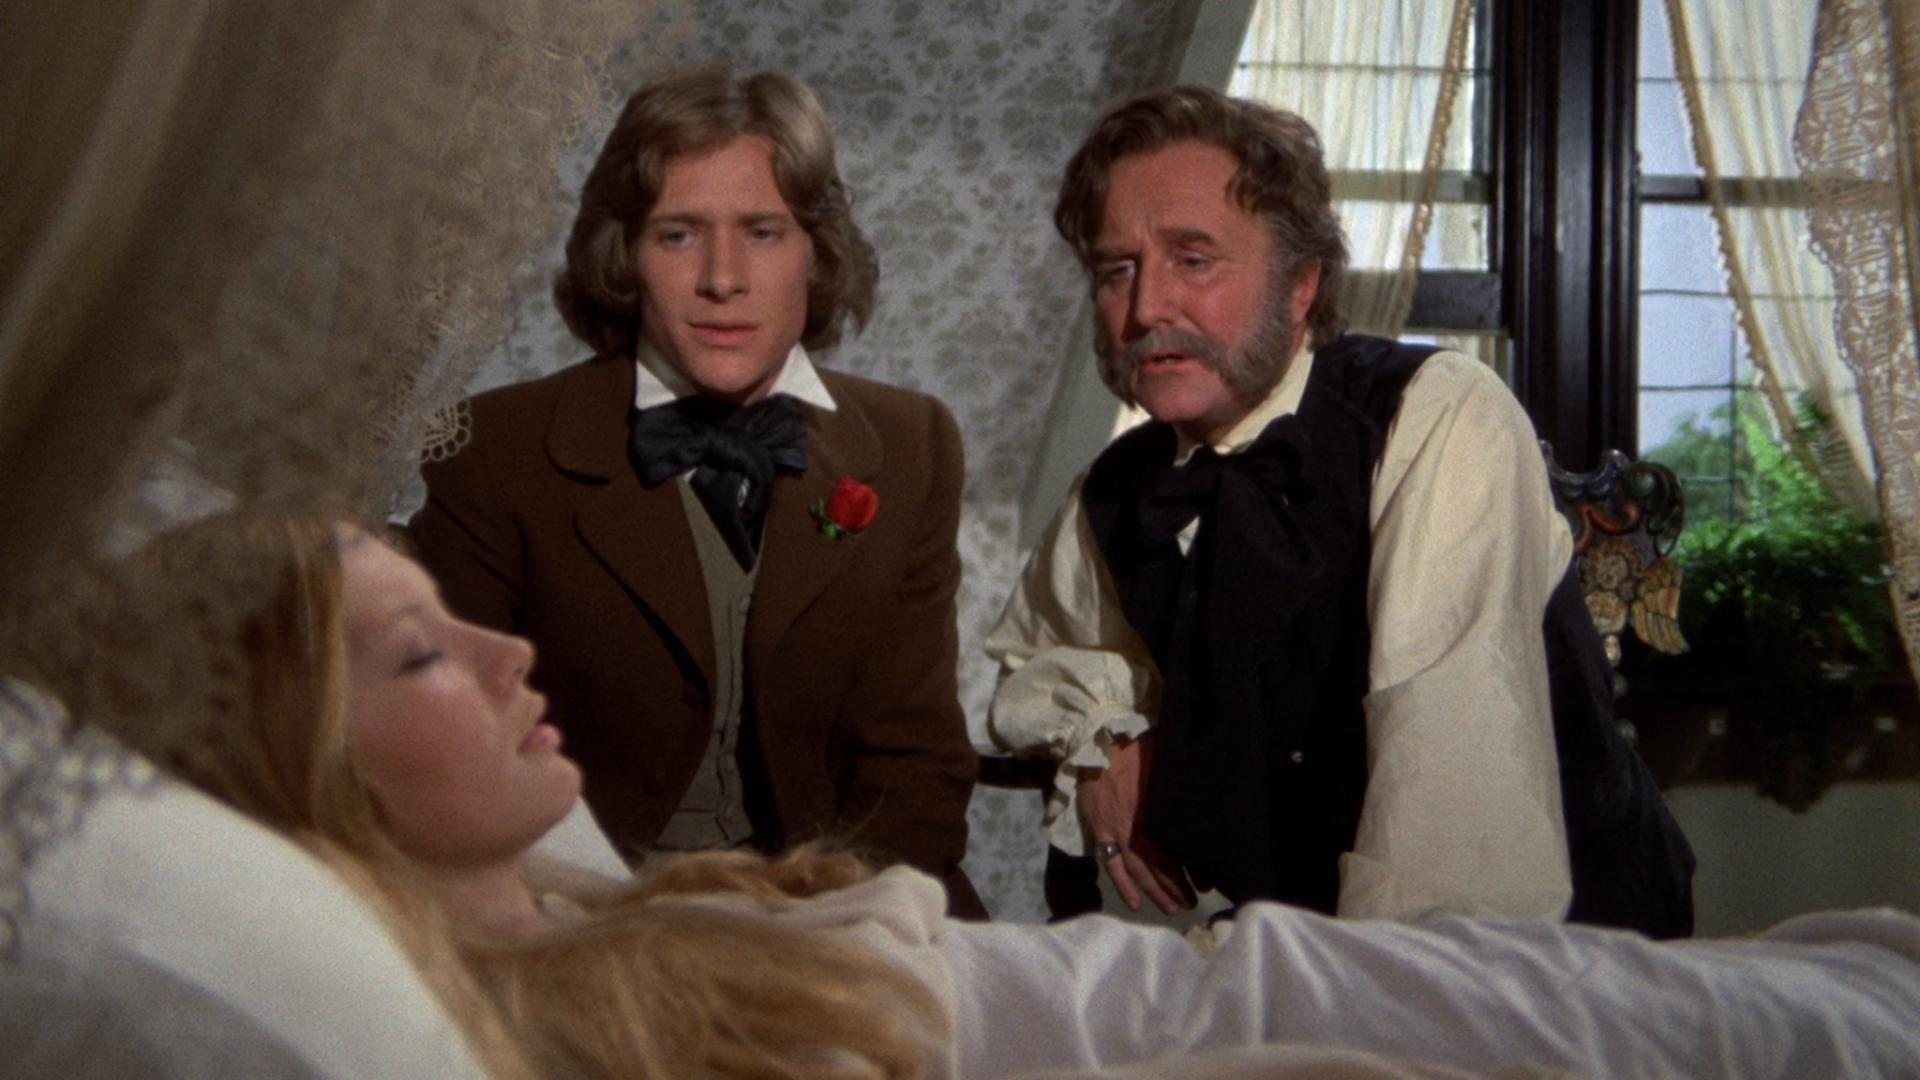 (l to r) Paul Jones and Robert Hardy try to find aid for the madness that infects Gillian Hills in Demons of the Mind (1972)